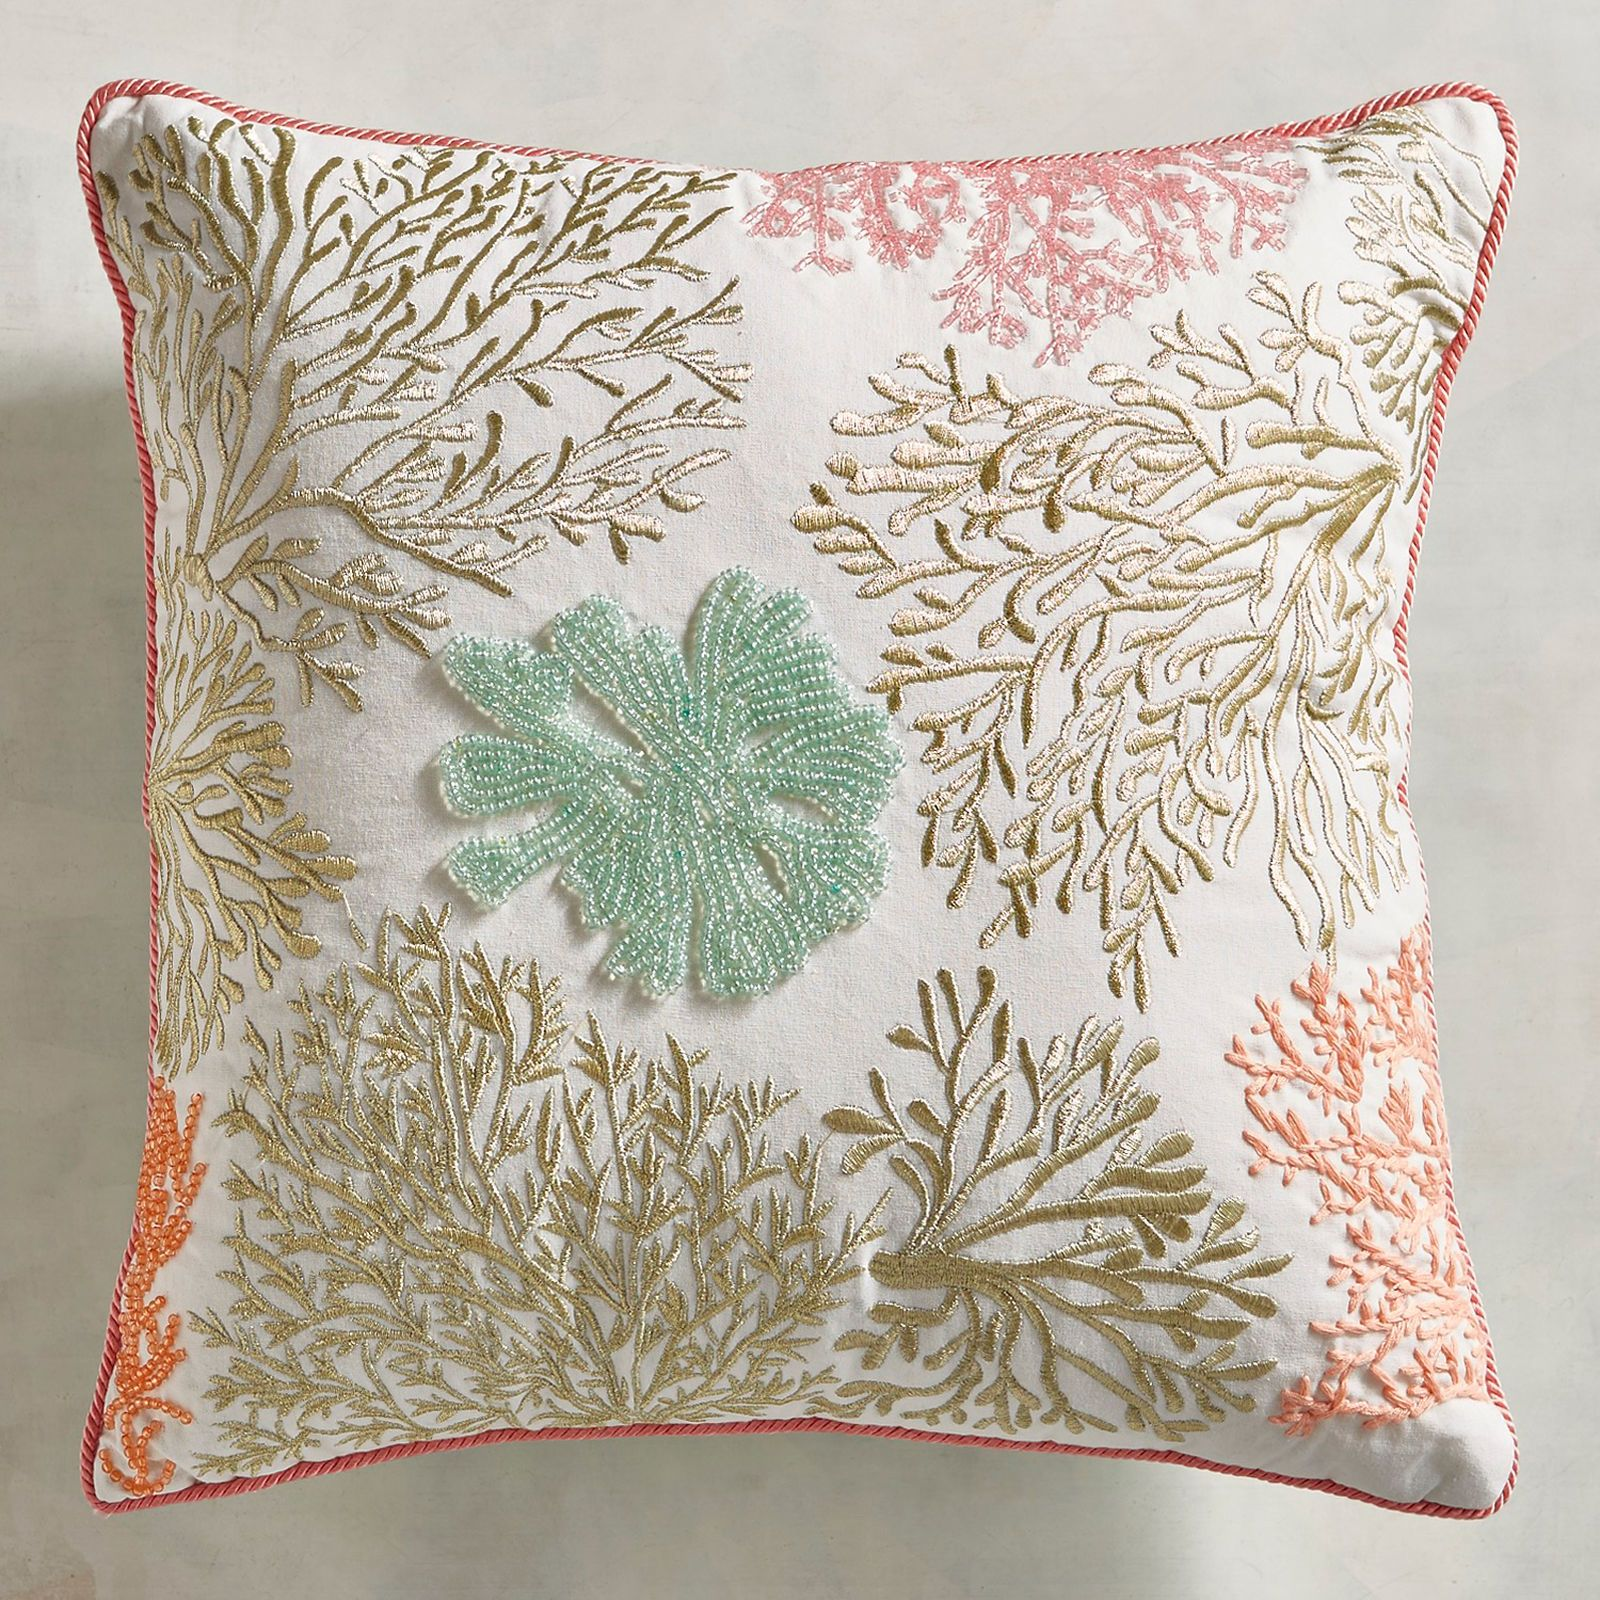 Beaded Embroidered Coral Pillow Pier 1 Imports For Teal Chair Pillow Decorative Bedroom Blue Pillows Decorative Rustic Decorative Pillows